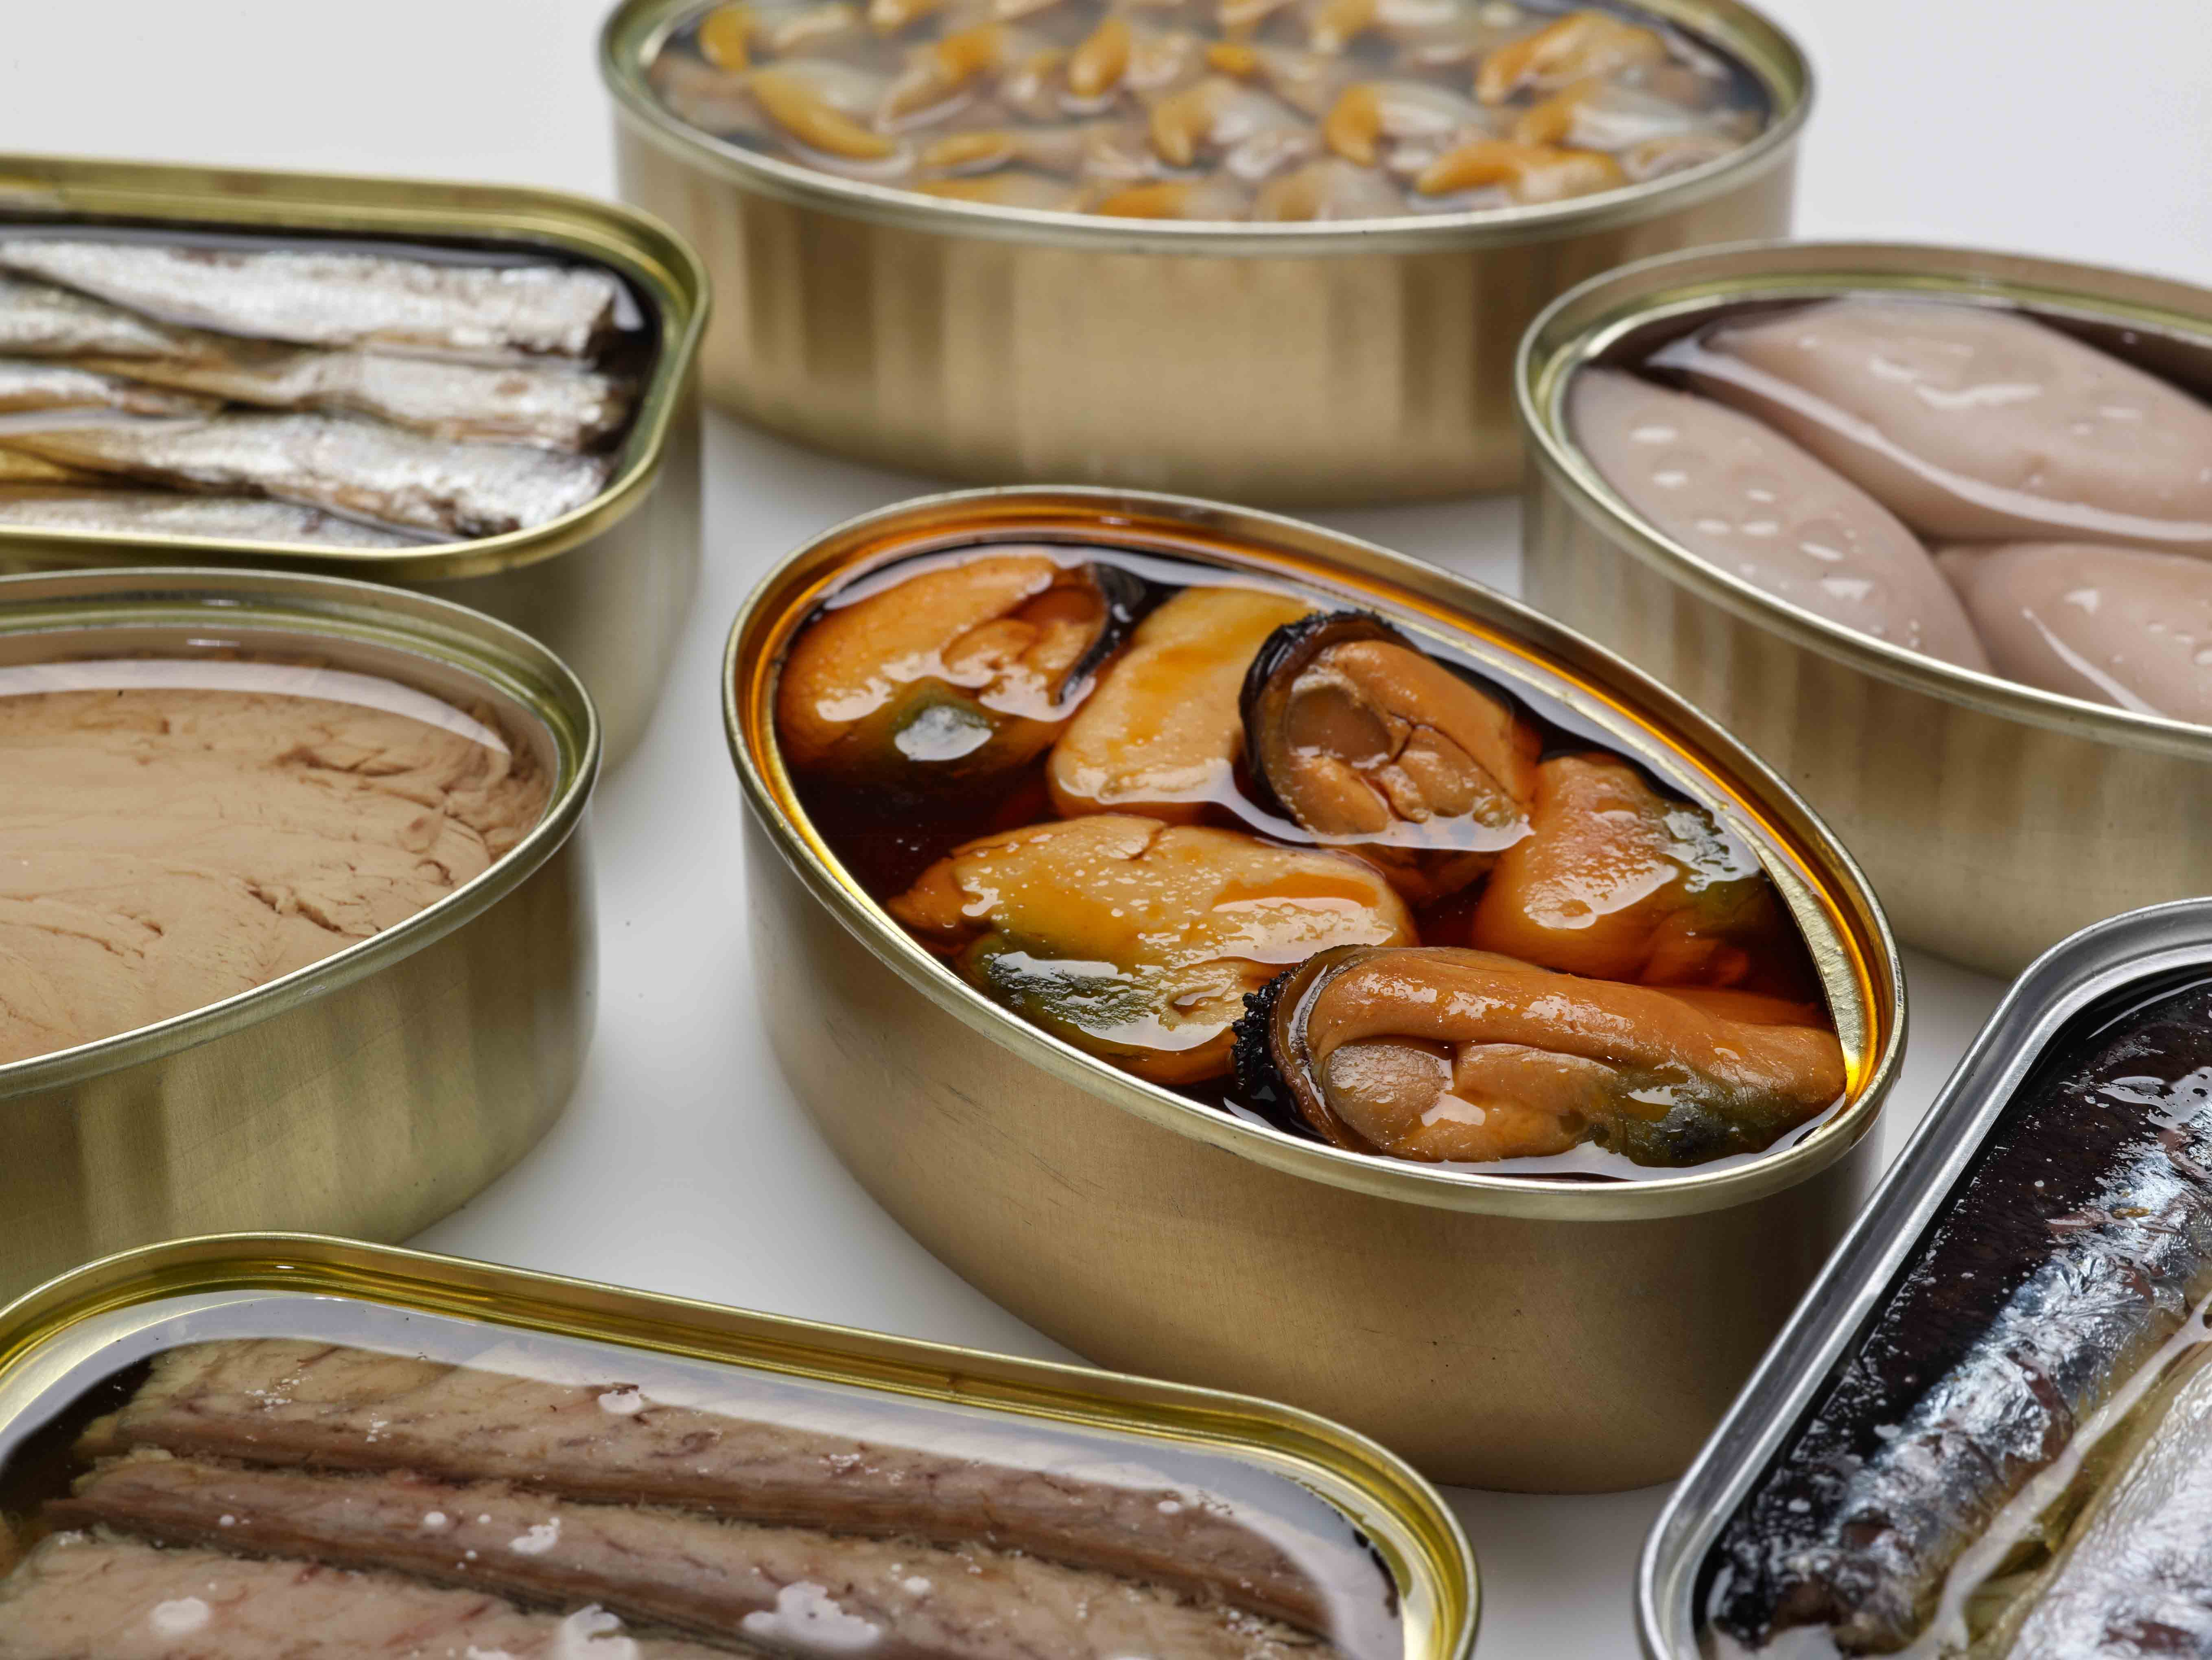 Canned fish and seafood in alphabetical order